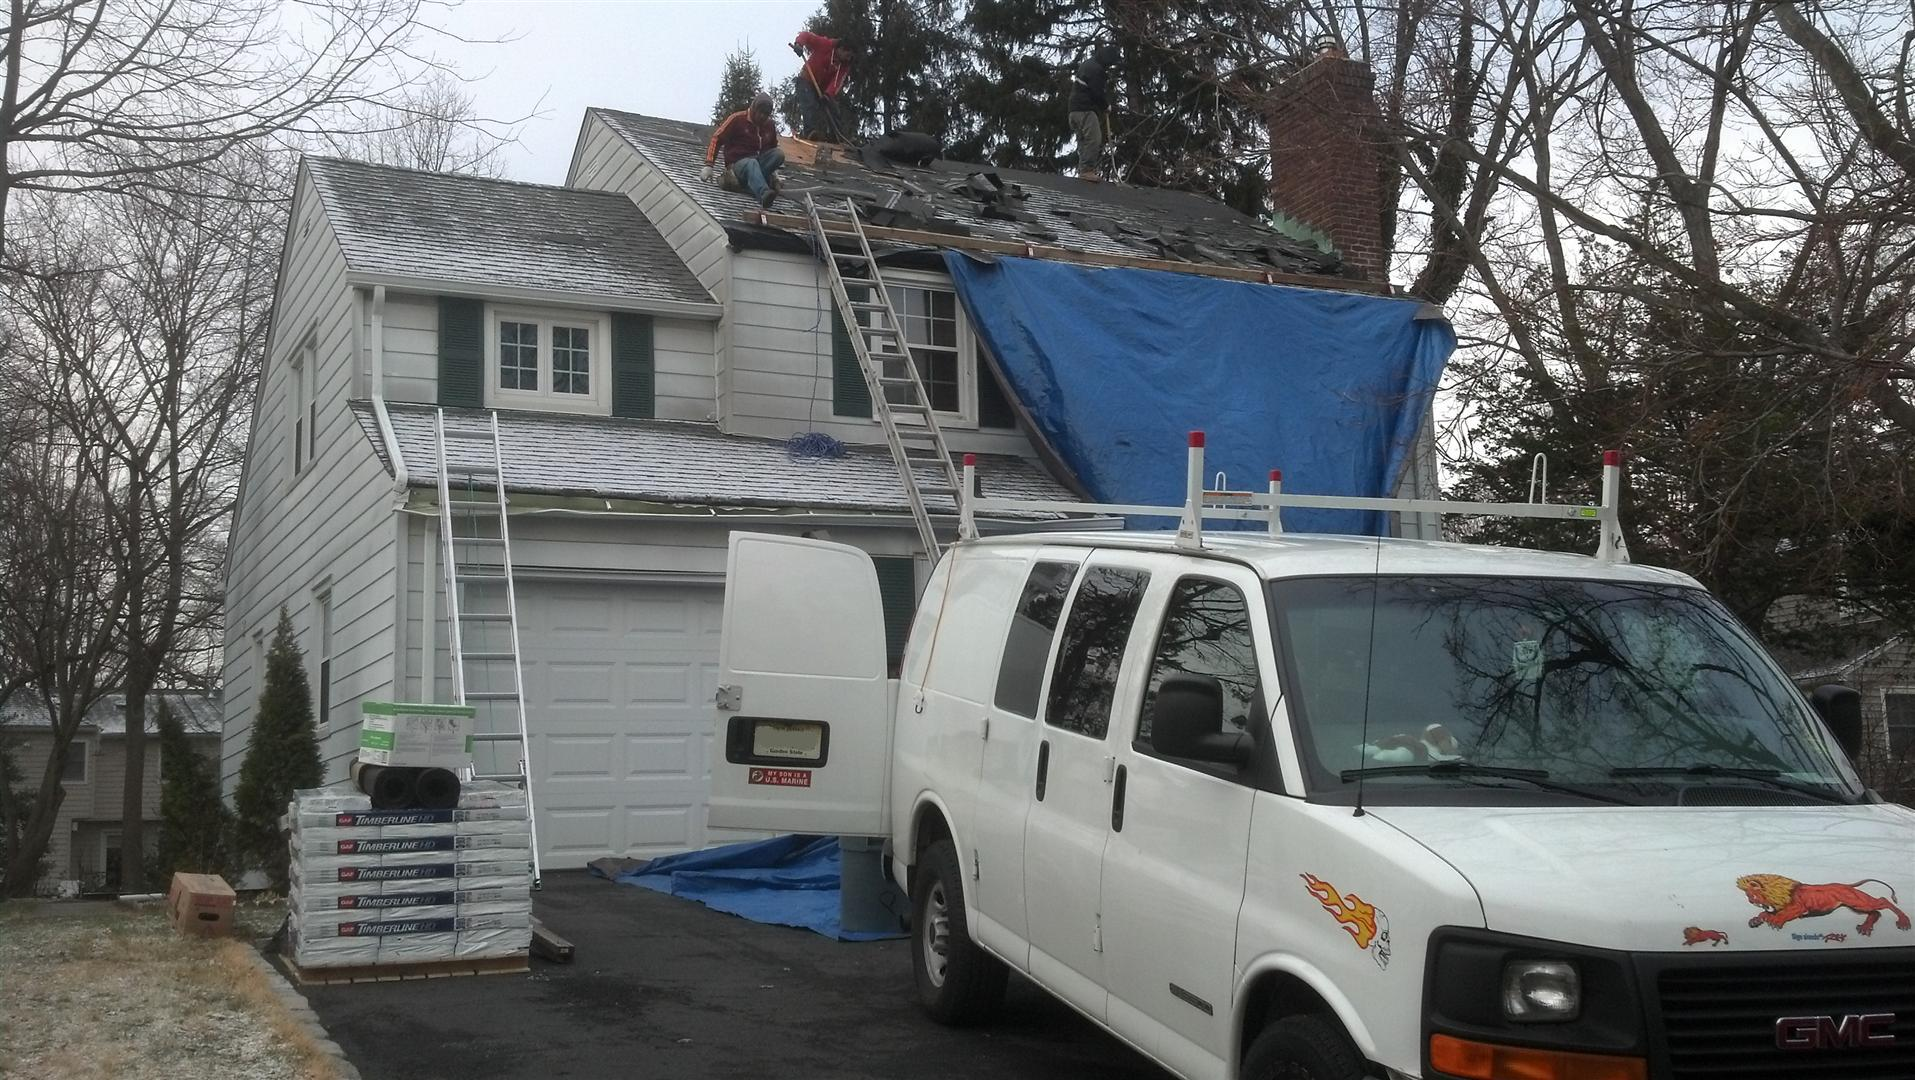 New Asphalt GAF Roof Shingles Installed On The Main Roof In Springfield, NJ.